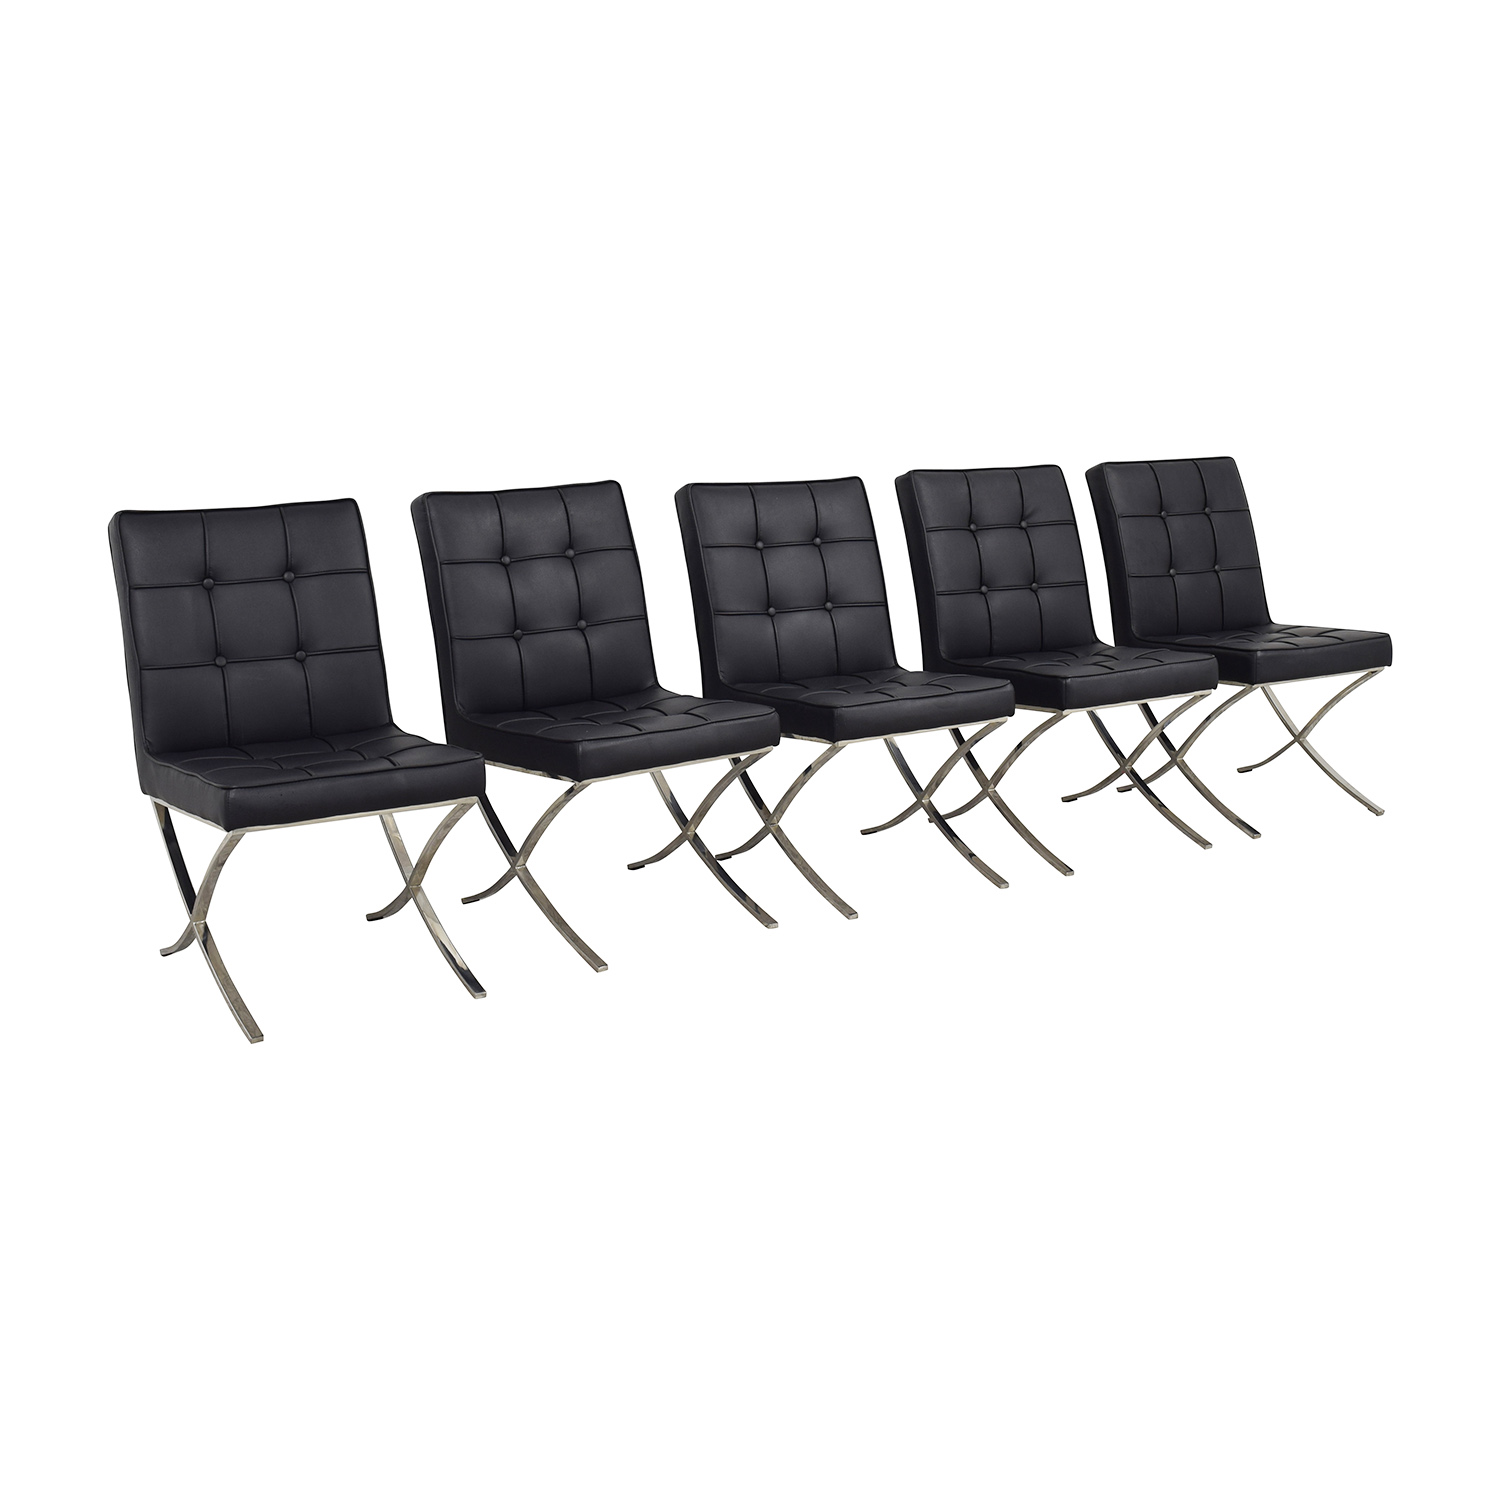 Gentil ... West Elm West Elm Black Tufted Leather Chairs Second Hand ...